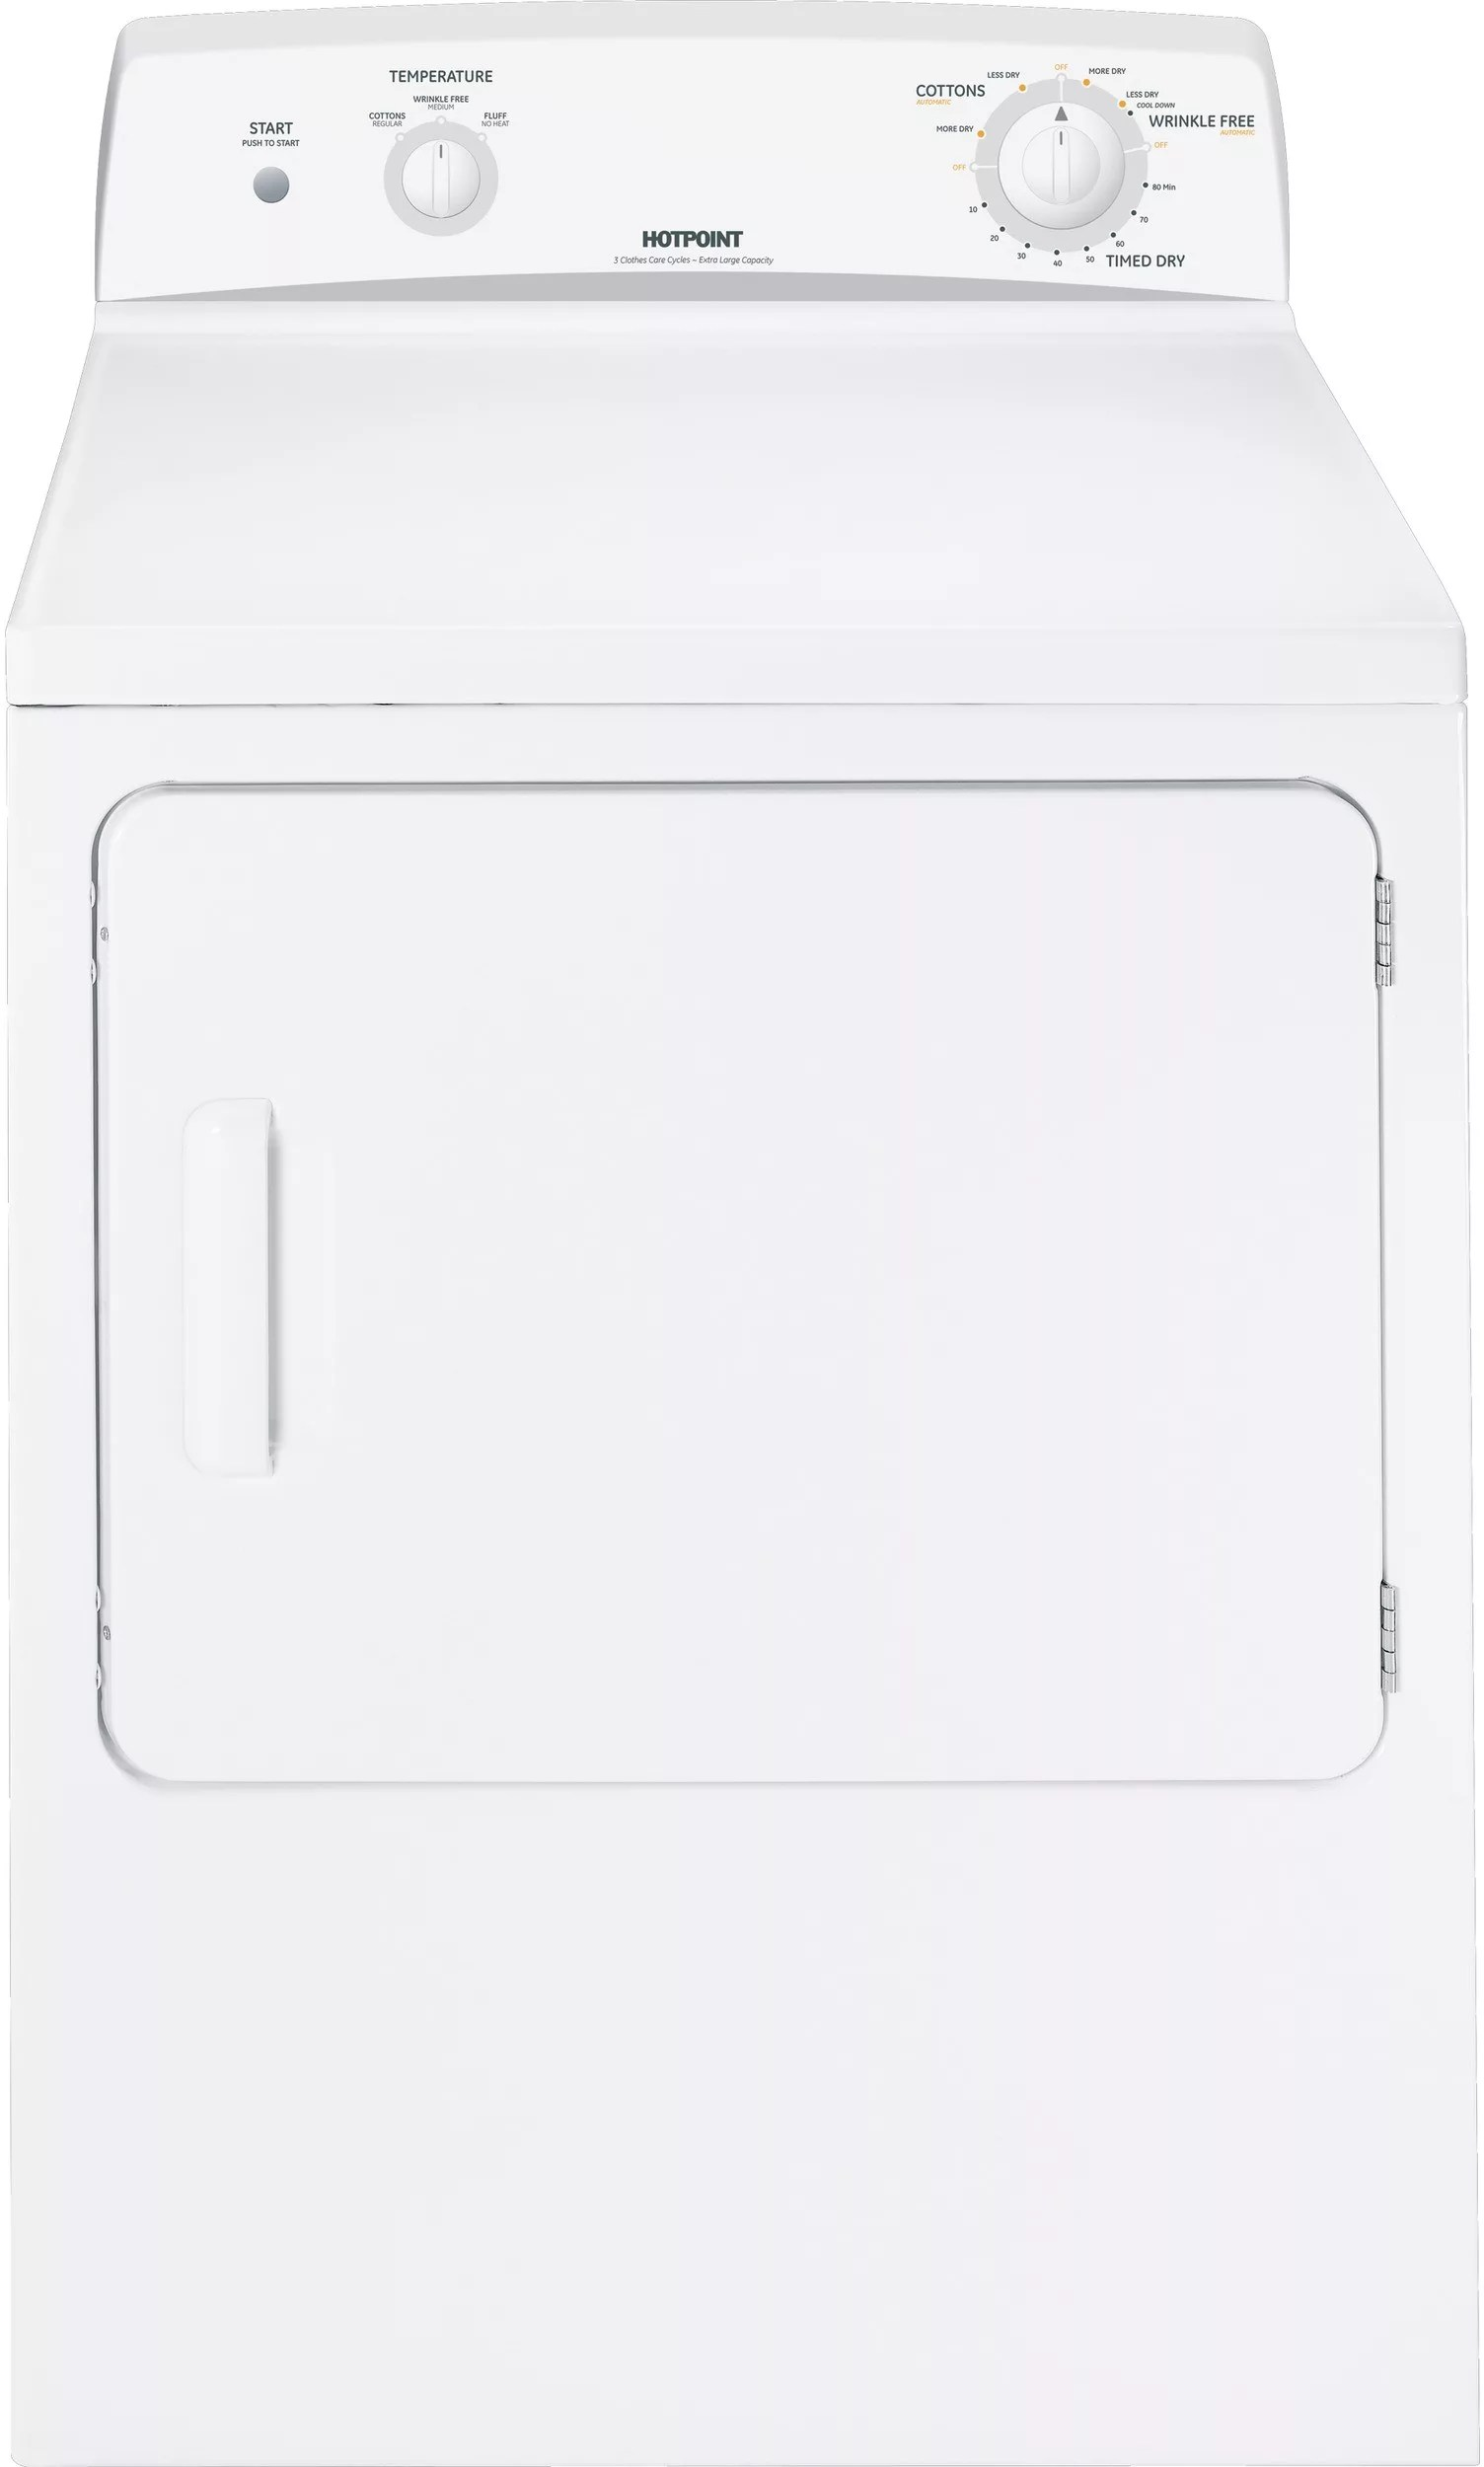 Hotpoint Htdx100emww 27 Inch Electric Dryer With 6 0 Cu